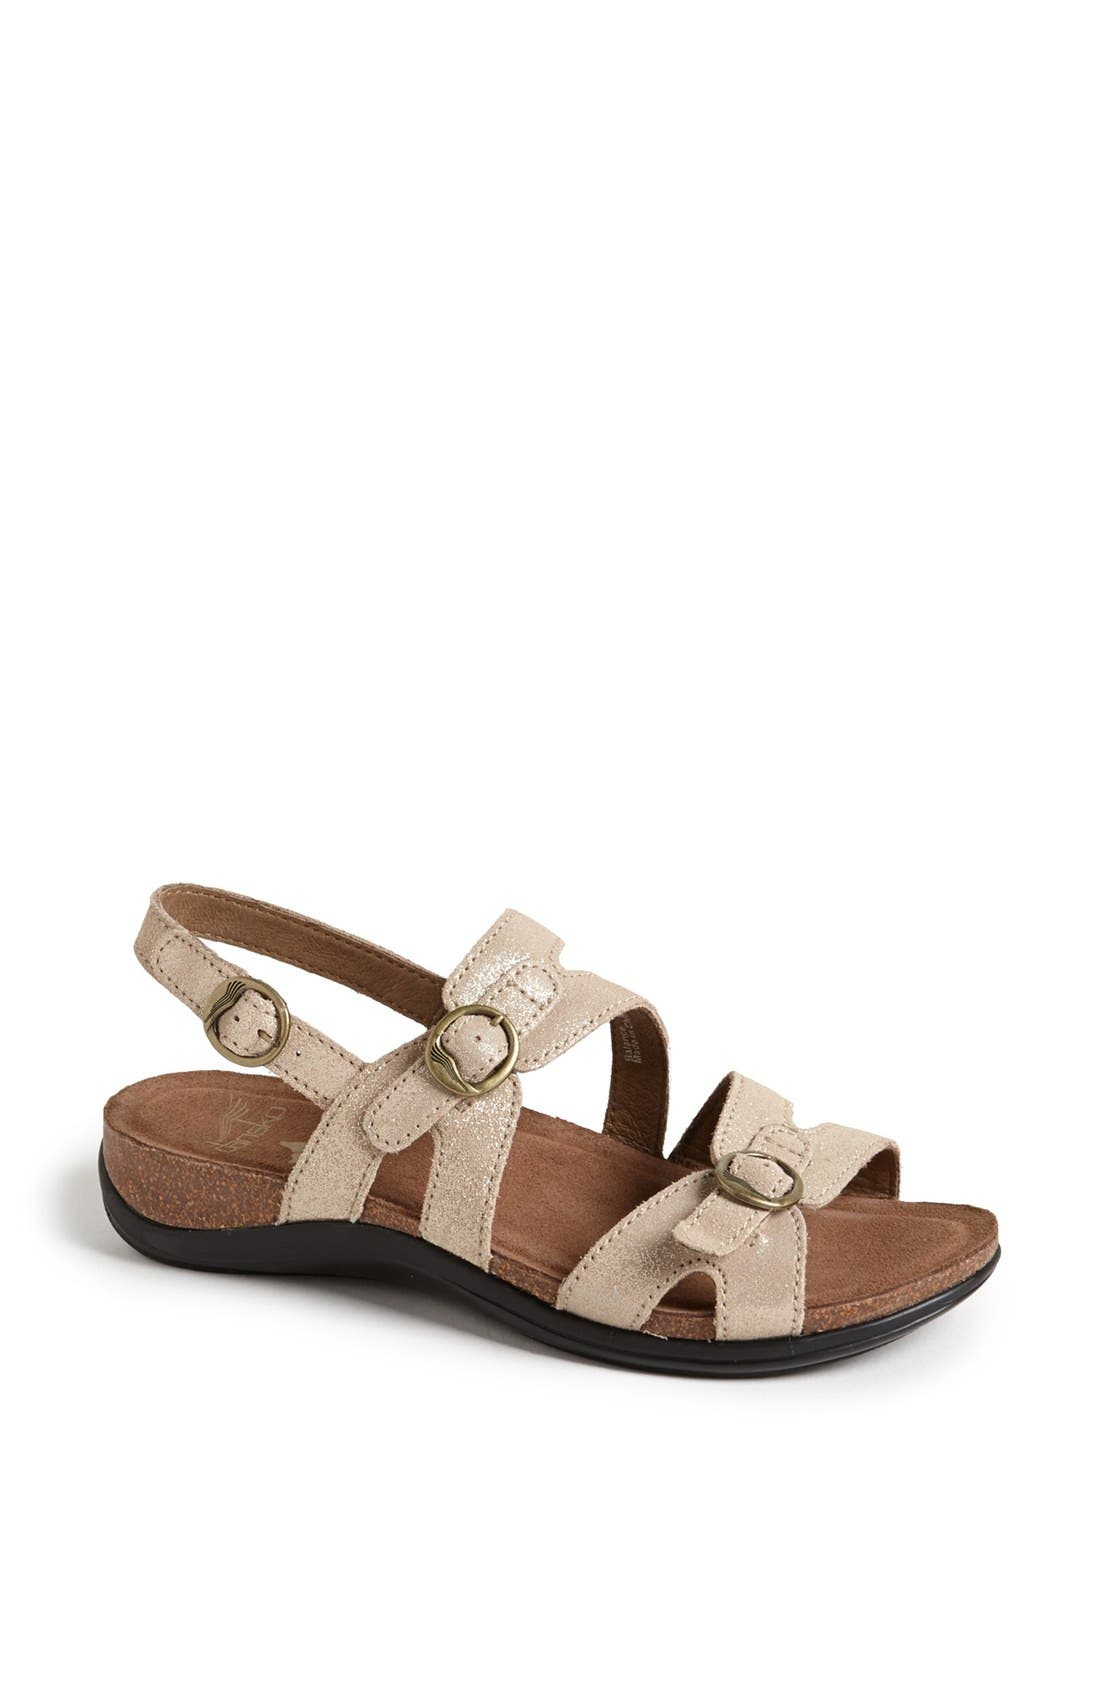 Alternate Image 1 Selected - Dansko 'Jameson' Leather Sandal